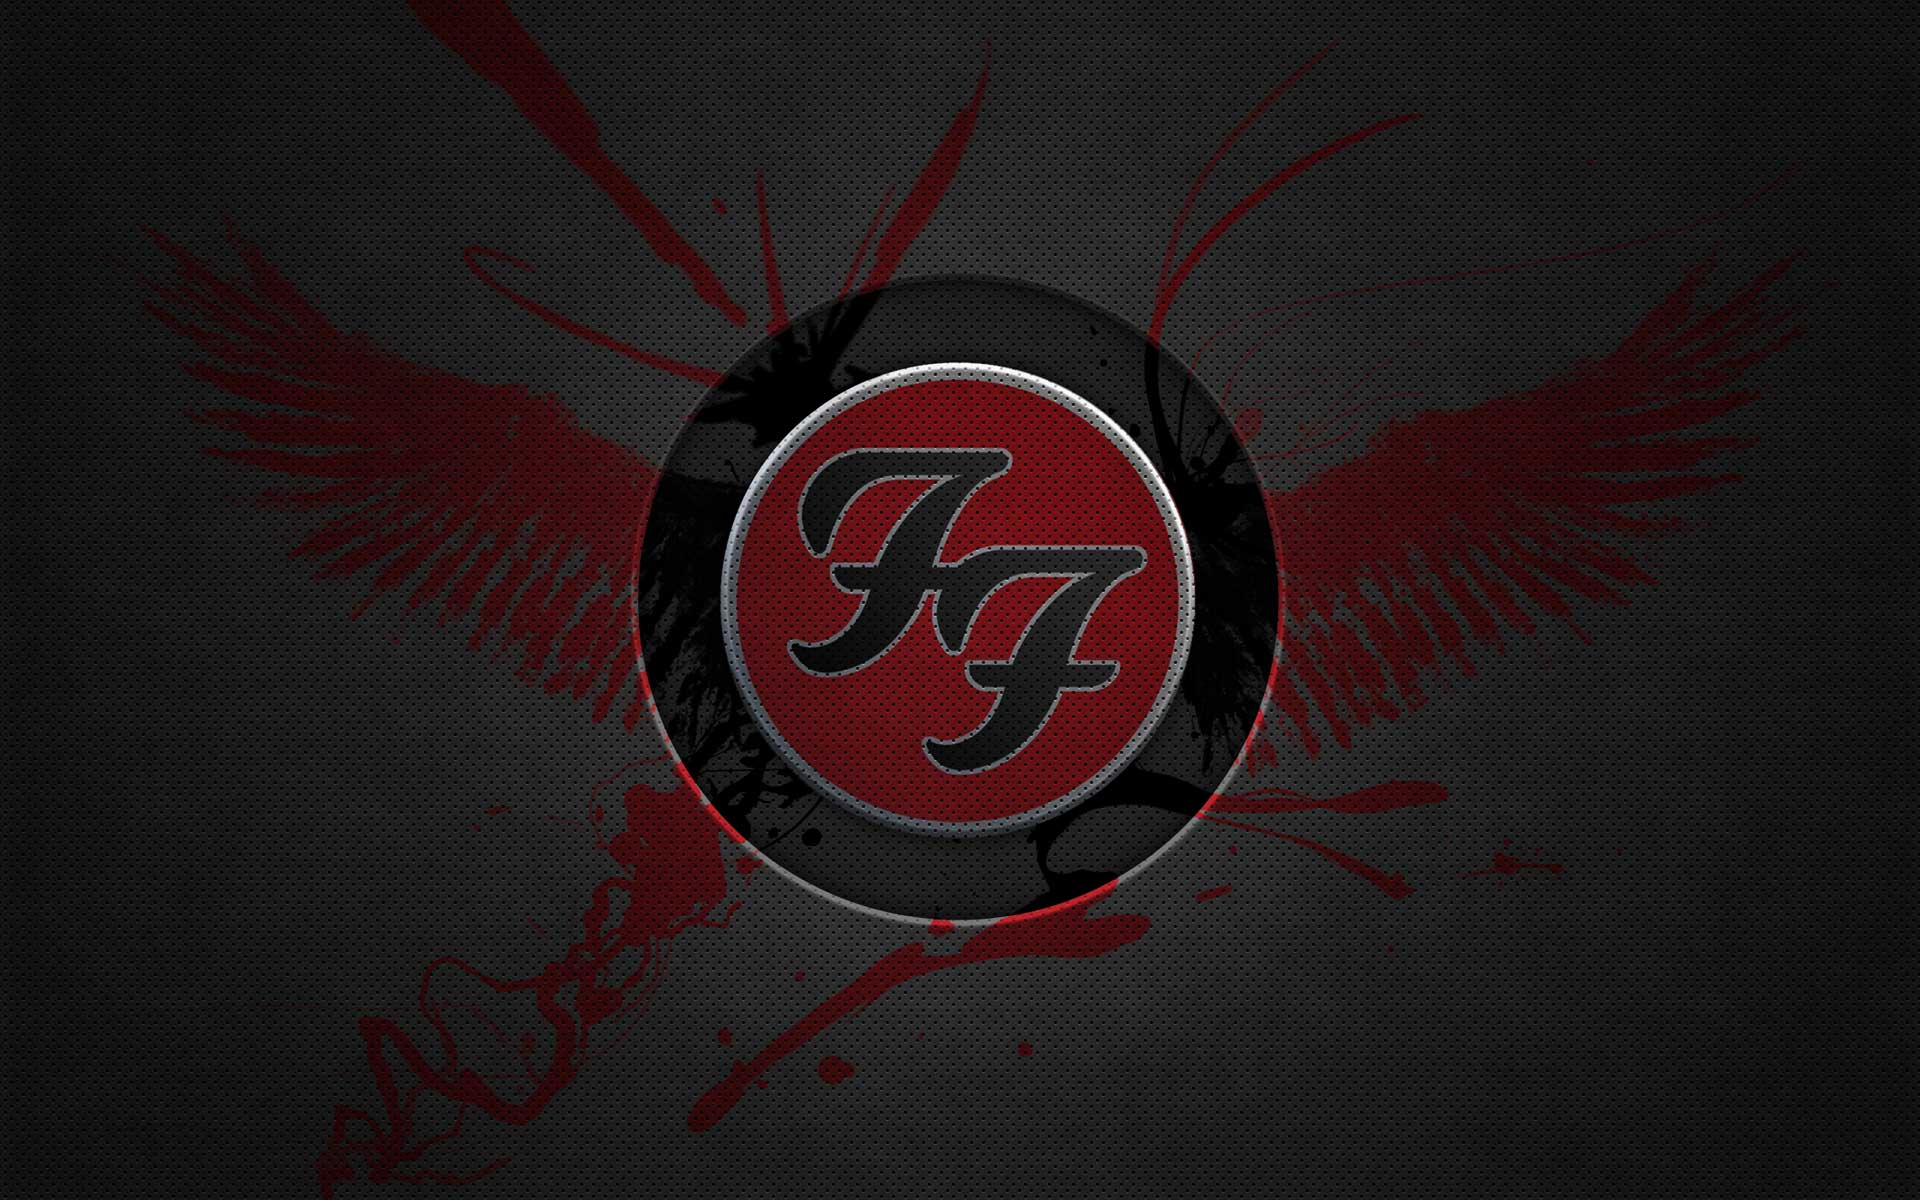 Foo Fighters New Album for 2014 1920x1200